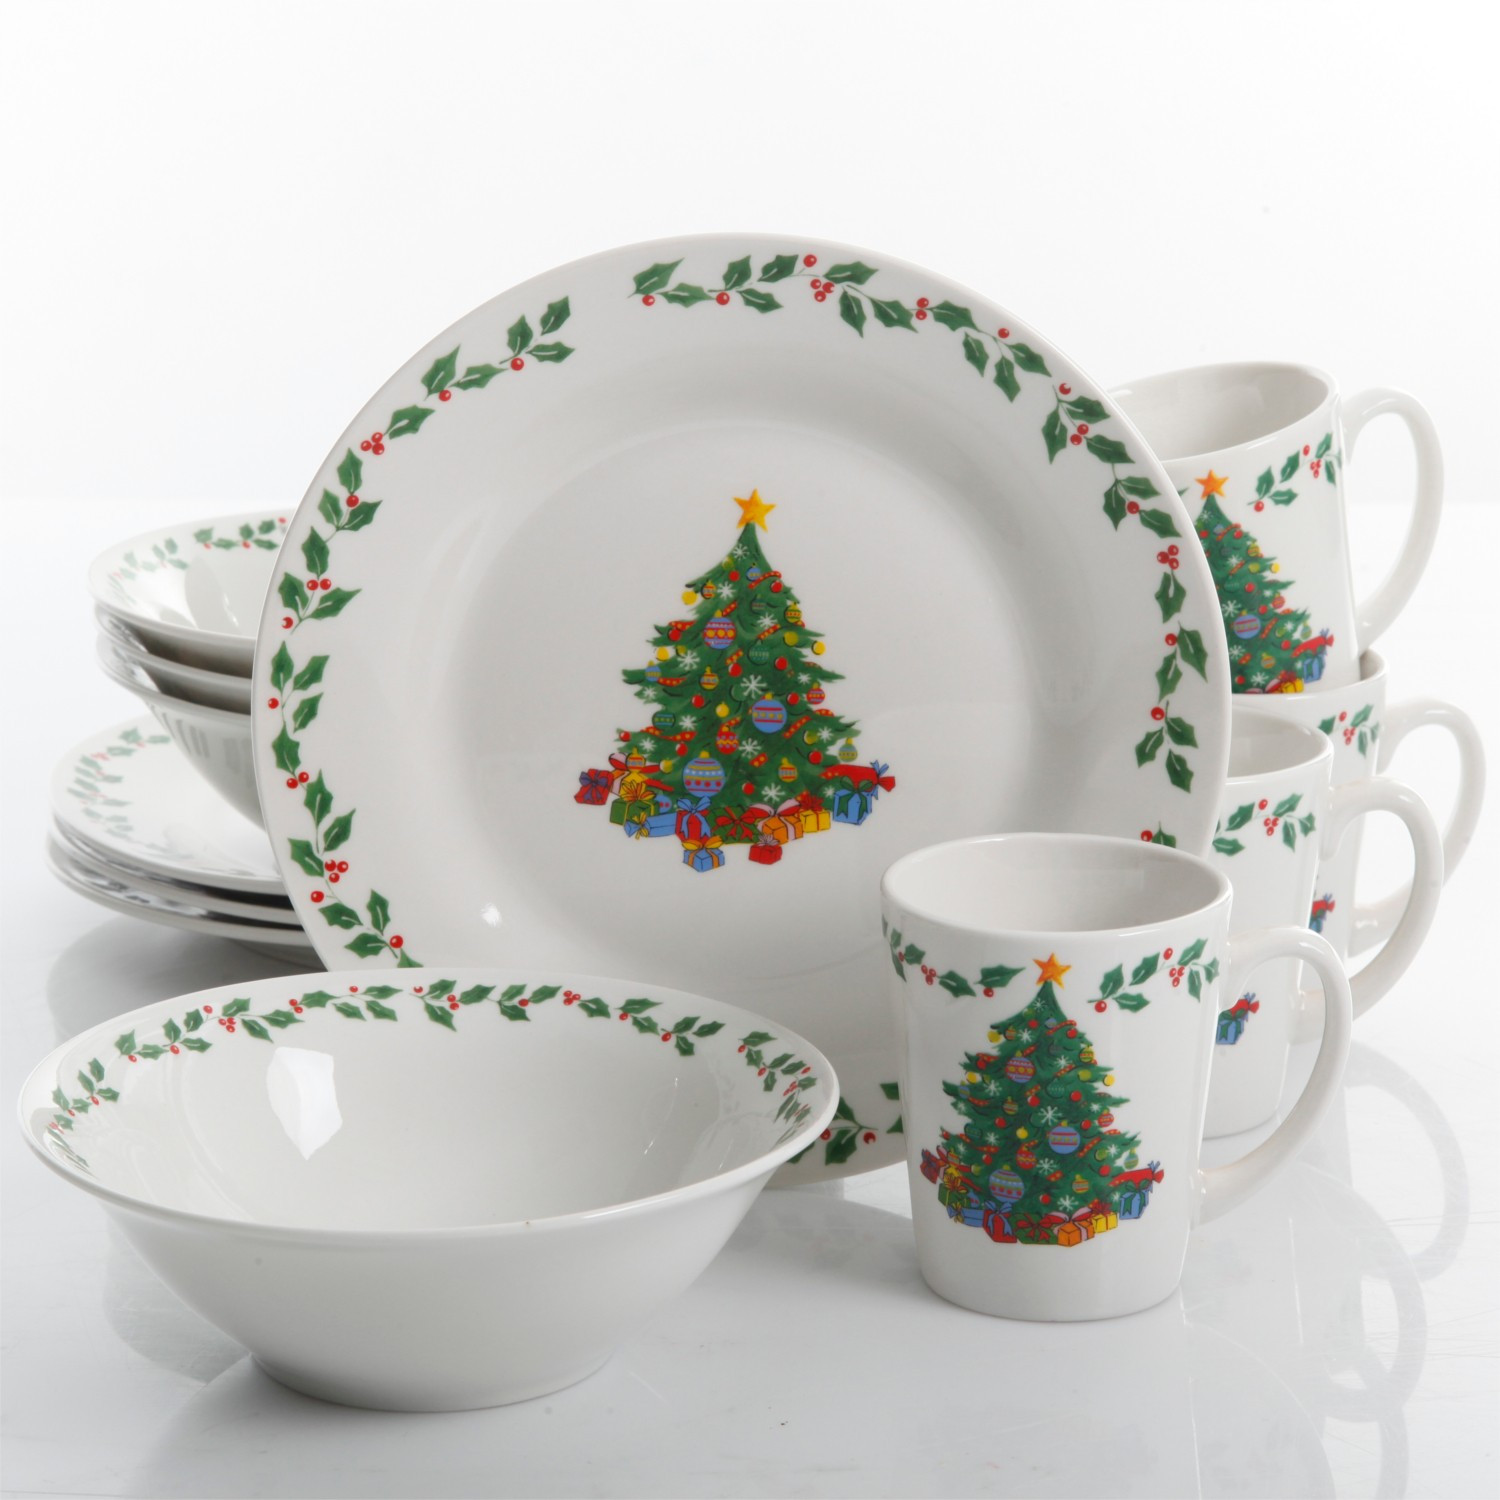 Christmas Dinner Set  Gibson Home Joyous Gathering 12 Piece Dinnerware Set